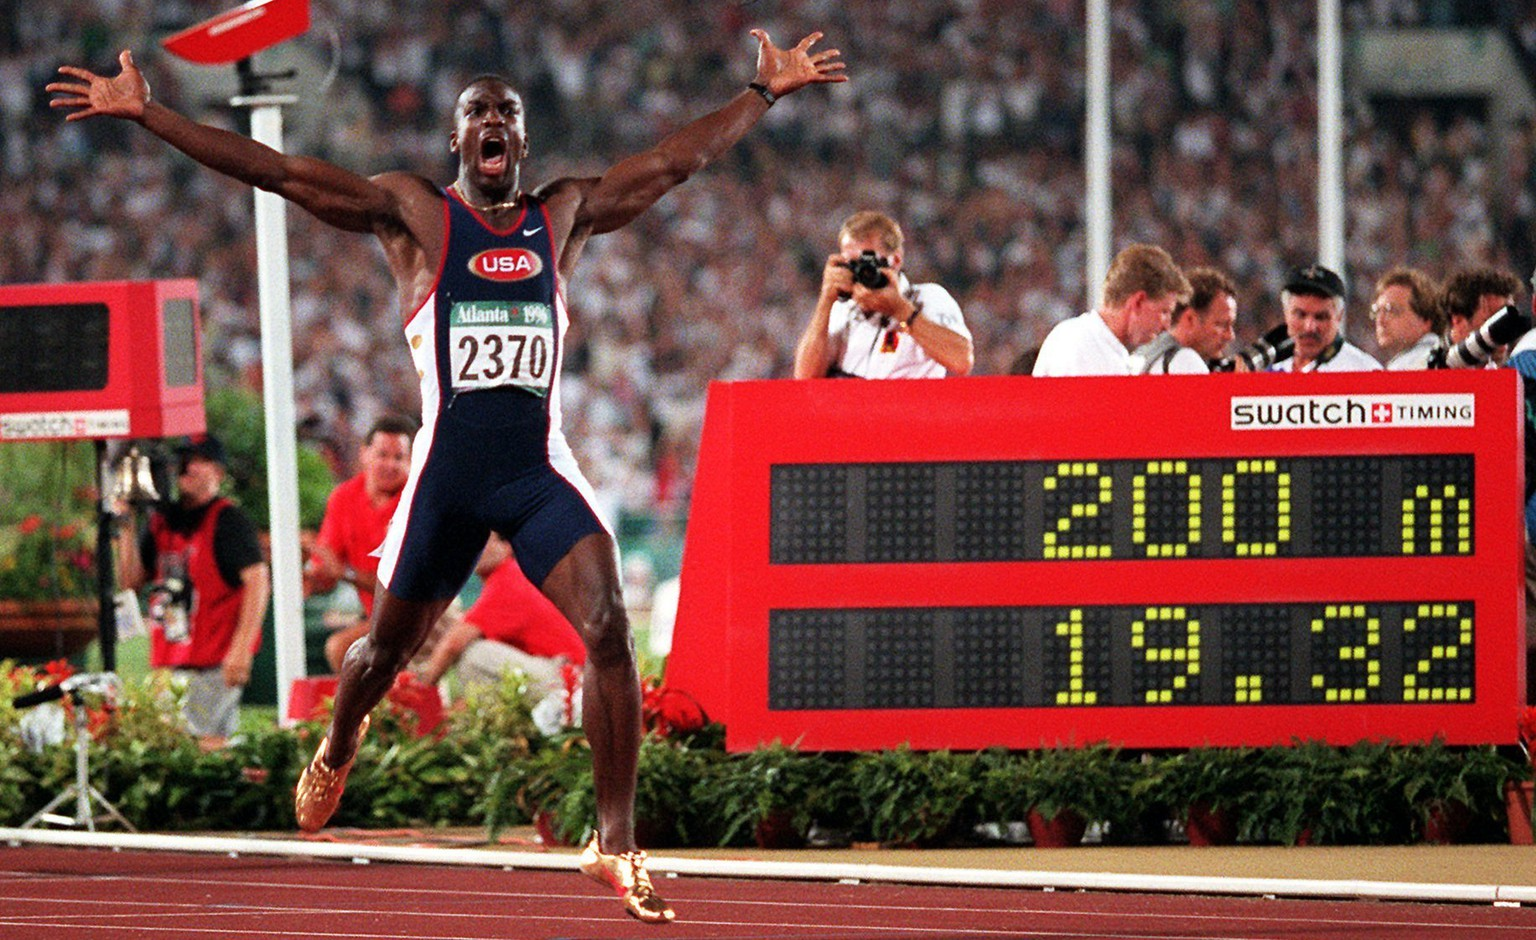 ADVANCE FOR SATURDAY, OCT. 1 - In this Aug. 1, 1996, file photo, Michael Johnson, of the United States, celebrates after he won the men's 200 meter final in a world record time of 19.32 at the 1996 Summer Olympic Games in Atlanta. Turner Field began its brief life as the main stadium for the 1996 Summer Olympics. After just two decades as the home of the Atlanta Braves, it's headed for another transformation. The Braves are moving to the suburbs next season, leaving the Ted to Georgia State University. (AP Photo/Doug Mills, File)